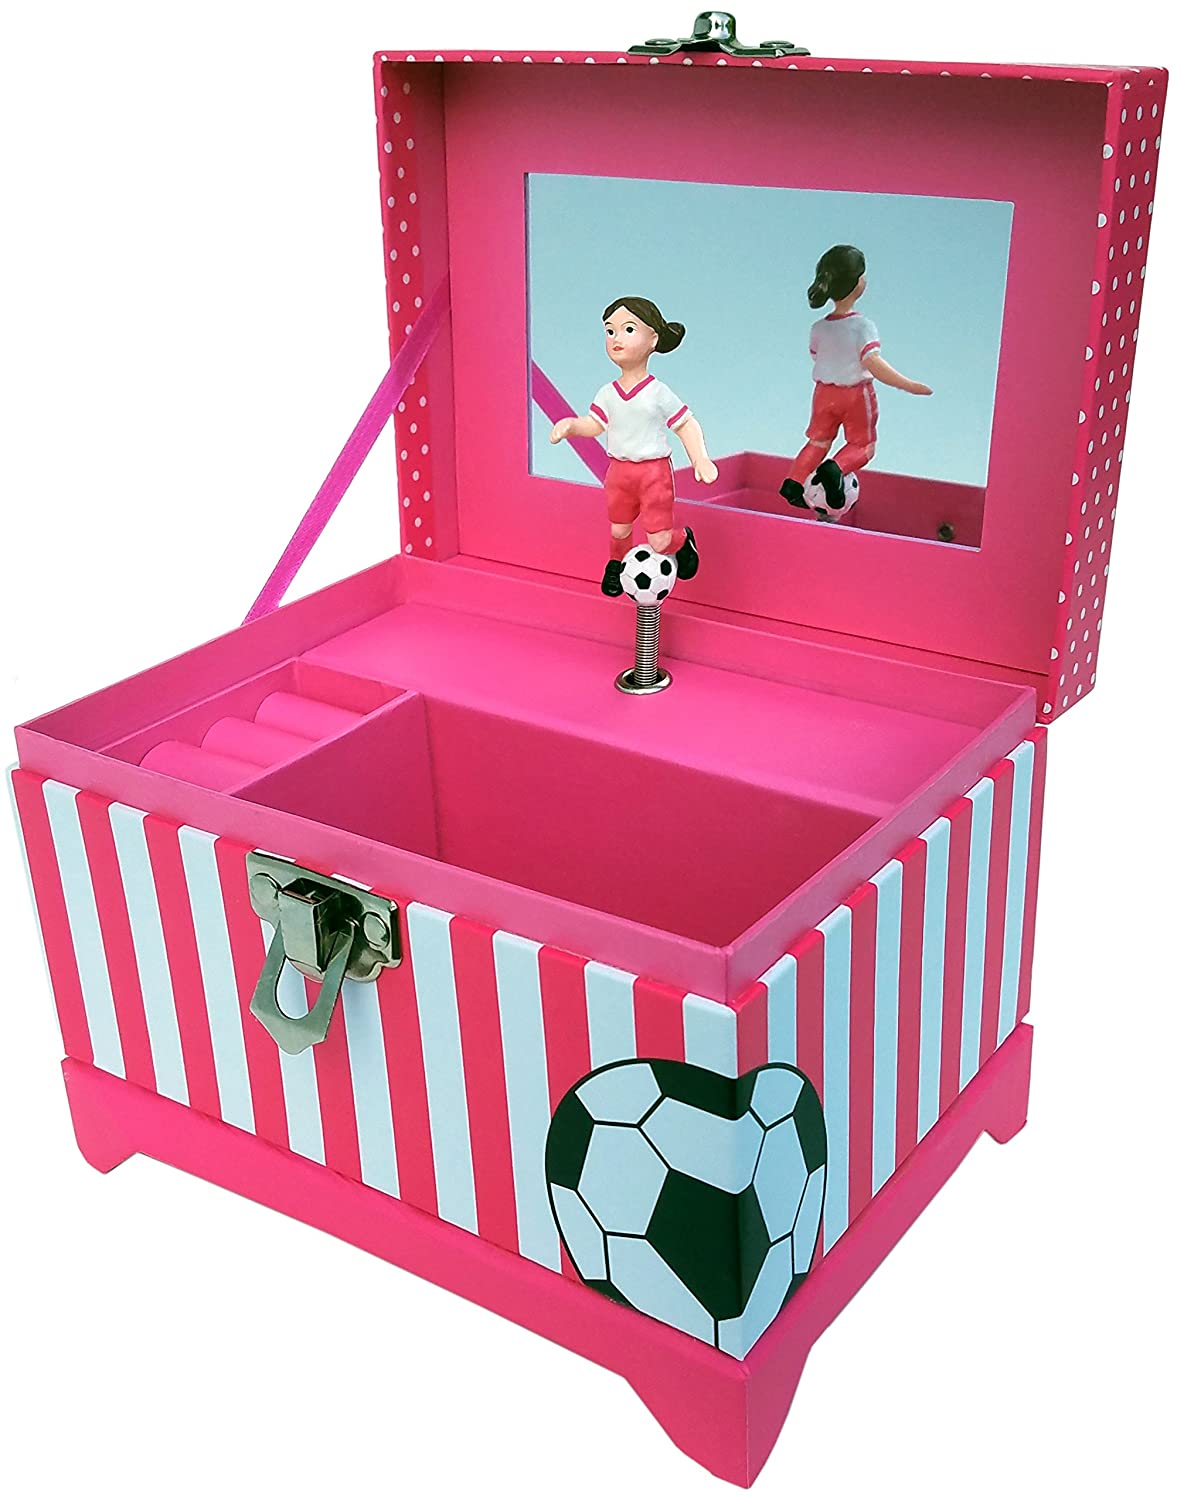 Just Like Me Soccer Player Musical Jewelry Box (Brown Hair Figurine)